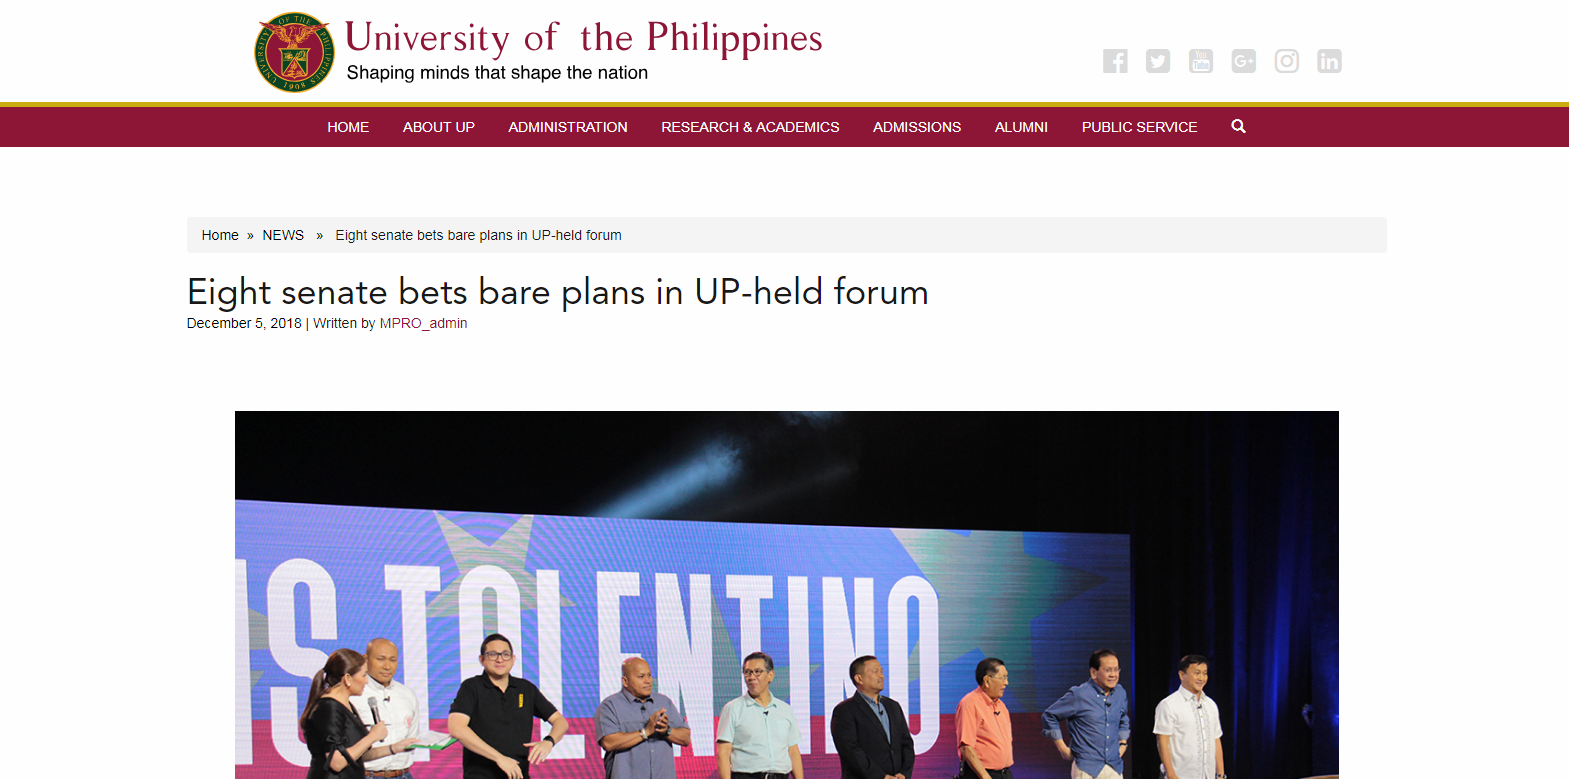 Eight senate bets bare plans in UP-held forum